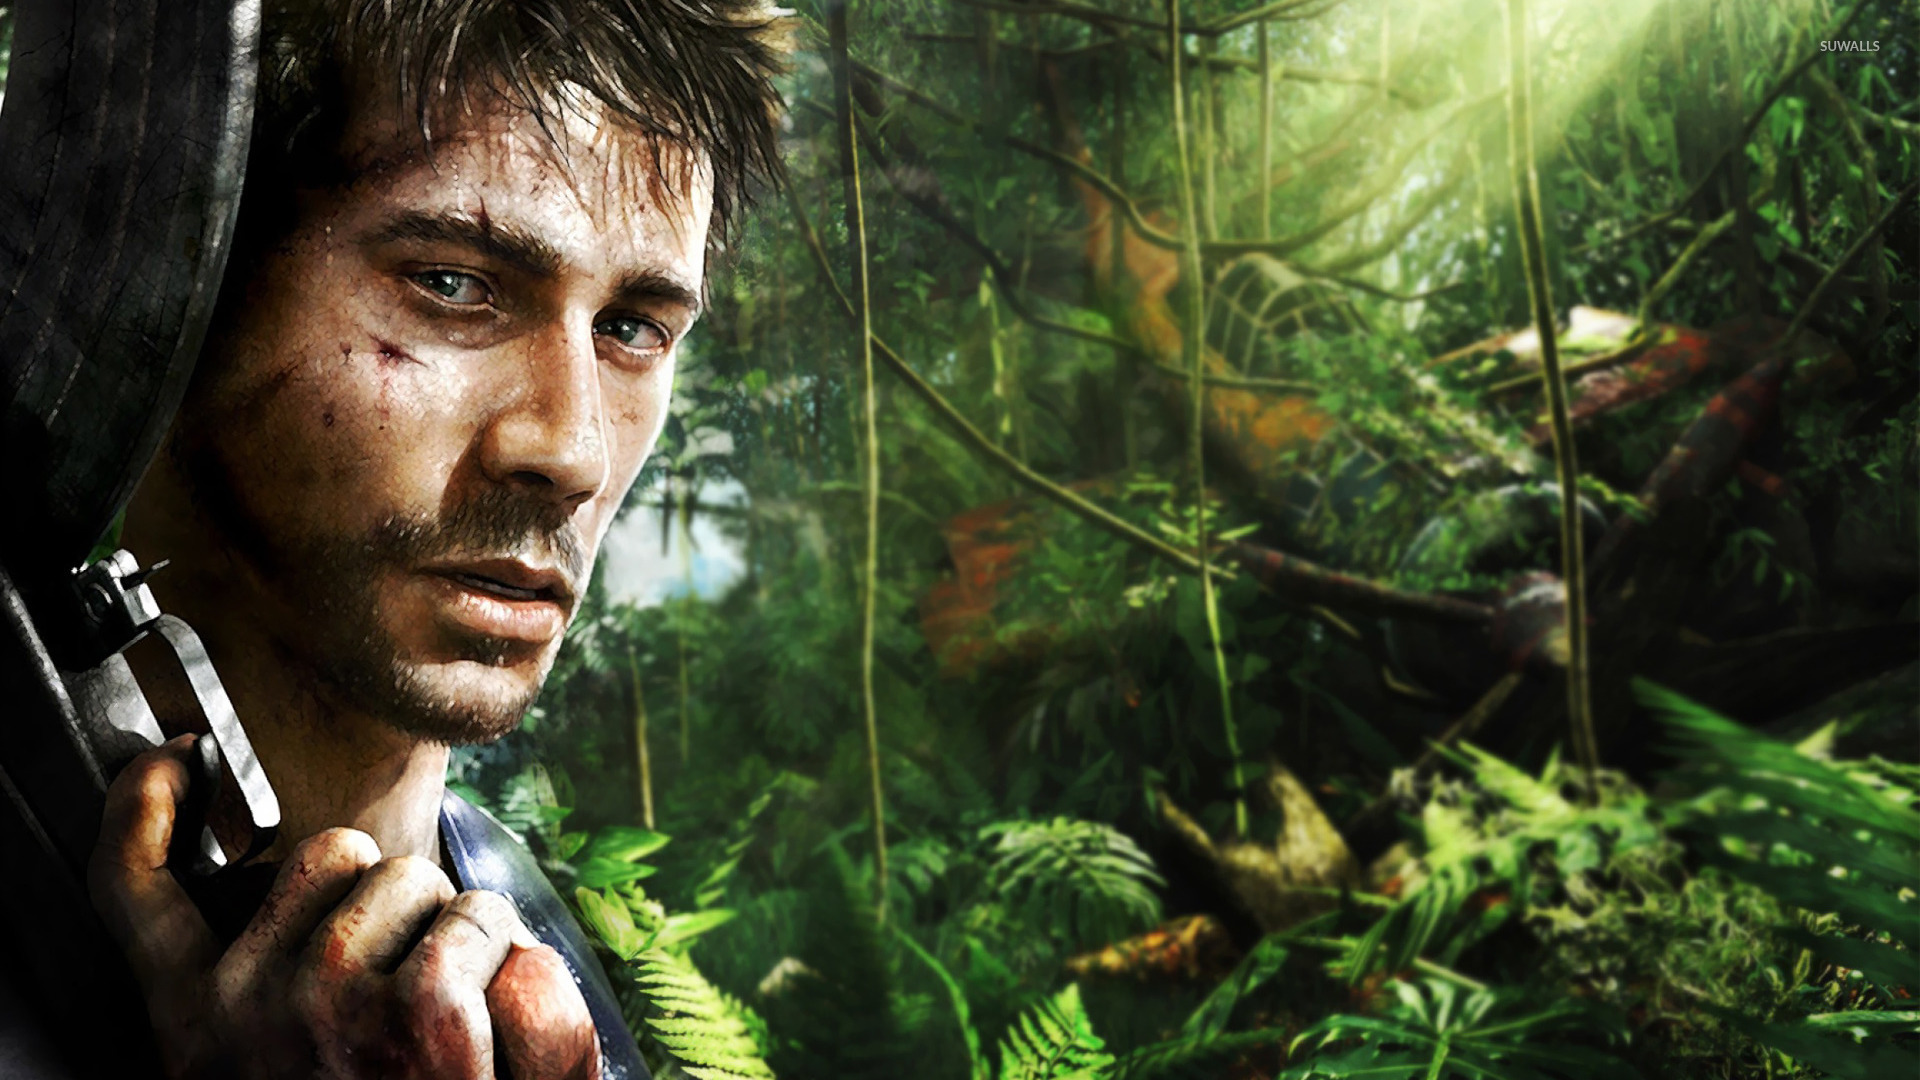 Jason Brody - Far Cry 3 [2] wallpaper - Game wallpapers ...